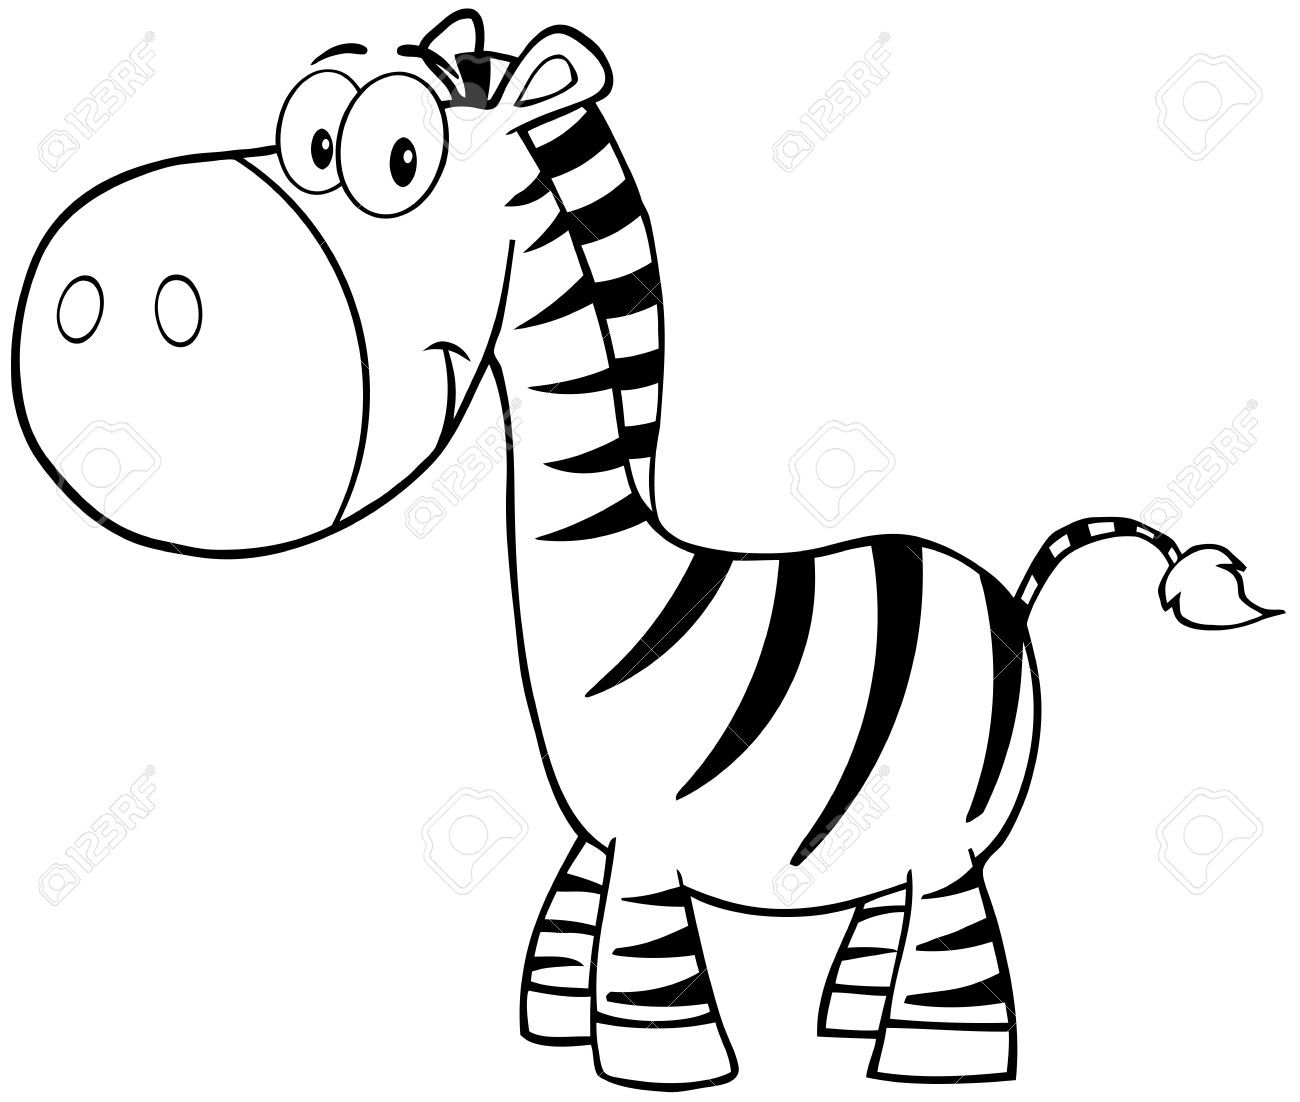 Animated Zebra Cliparts